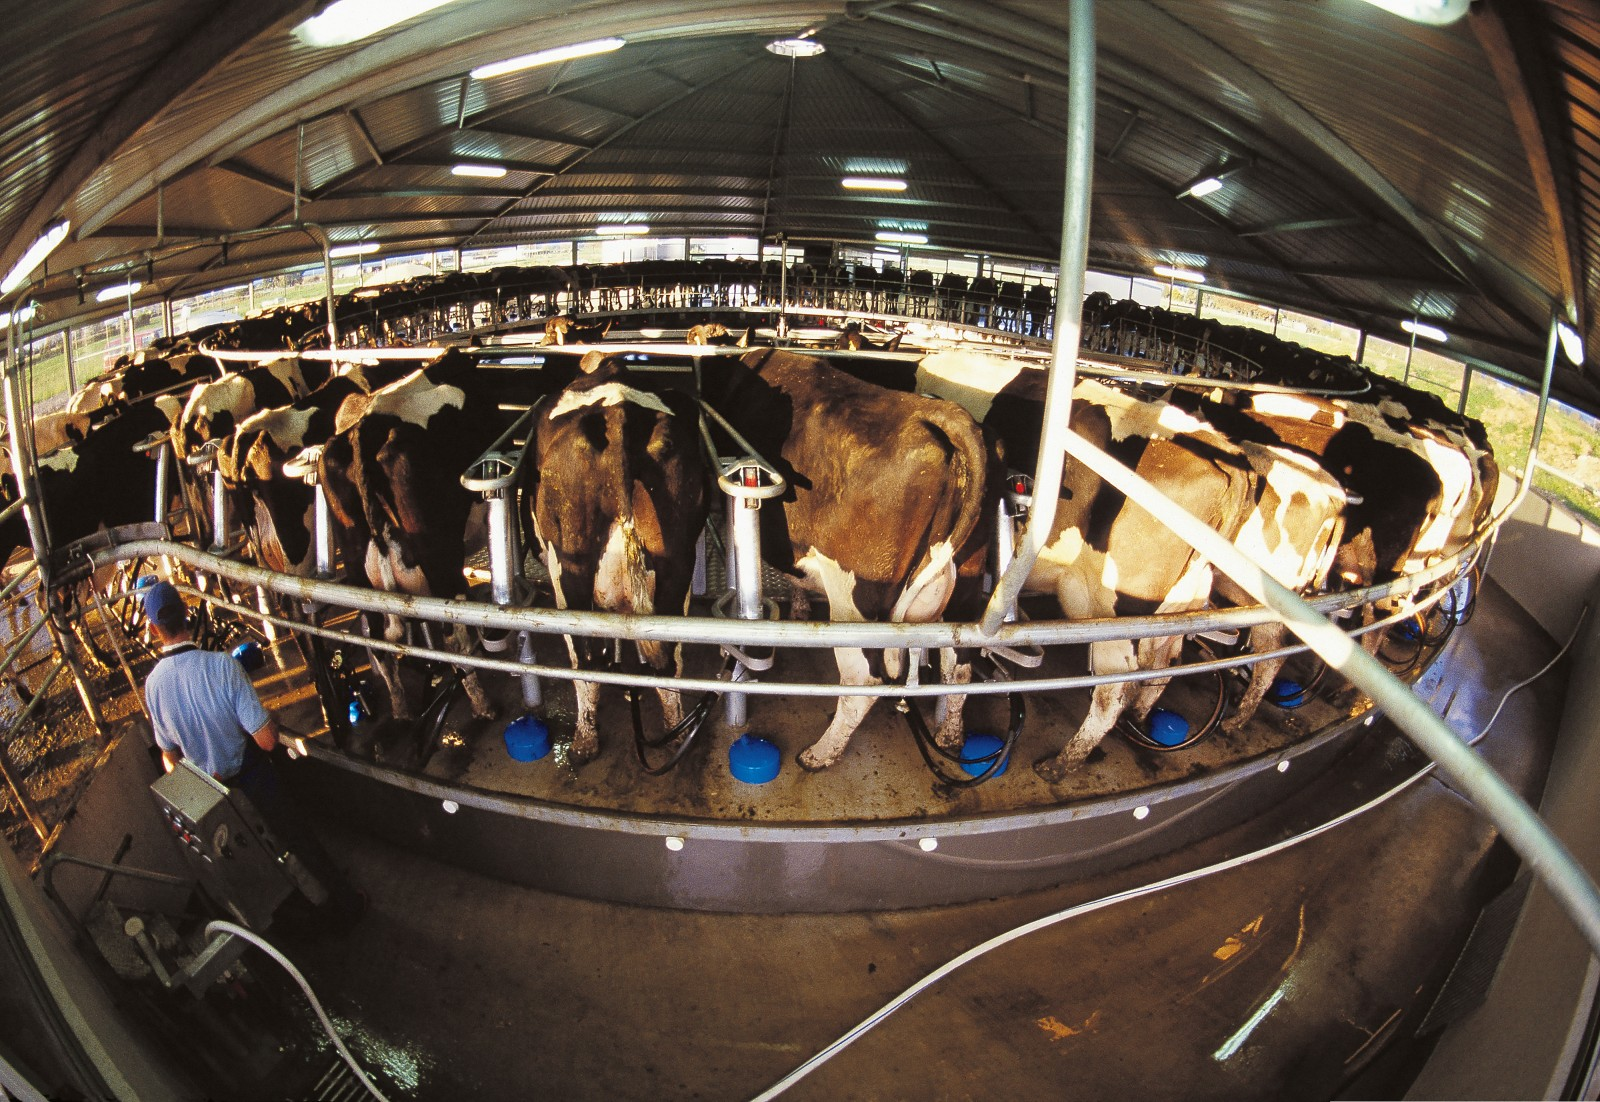 Eighty per cent of the country's dairy cows are inseminated through the corporation's artificial breeding programme, including those on Trevor Aitchison's farm on the Hauraki Plains. In his new rotary shed, the cows step onto a slowly turning platform and have the cups attached—here by Trevor's son Karl. When the cows have completed the circuit the cups are removed automatically, enabling Karl to milk 600 cows singlehandedly in an hour.